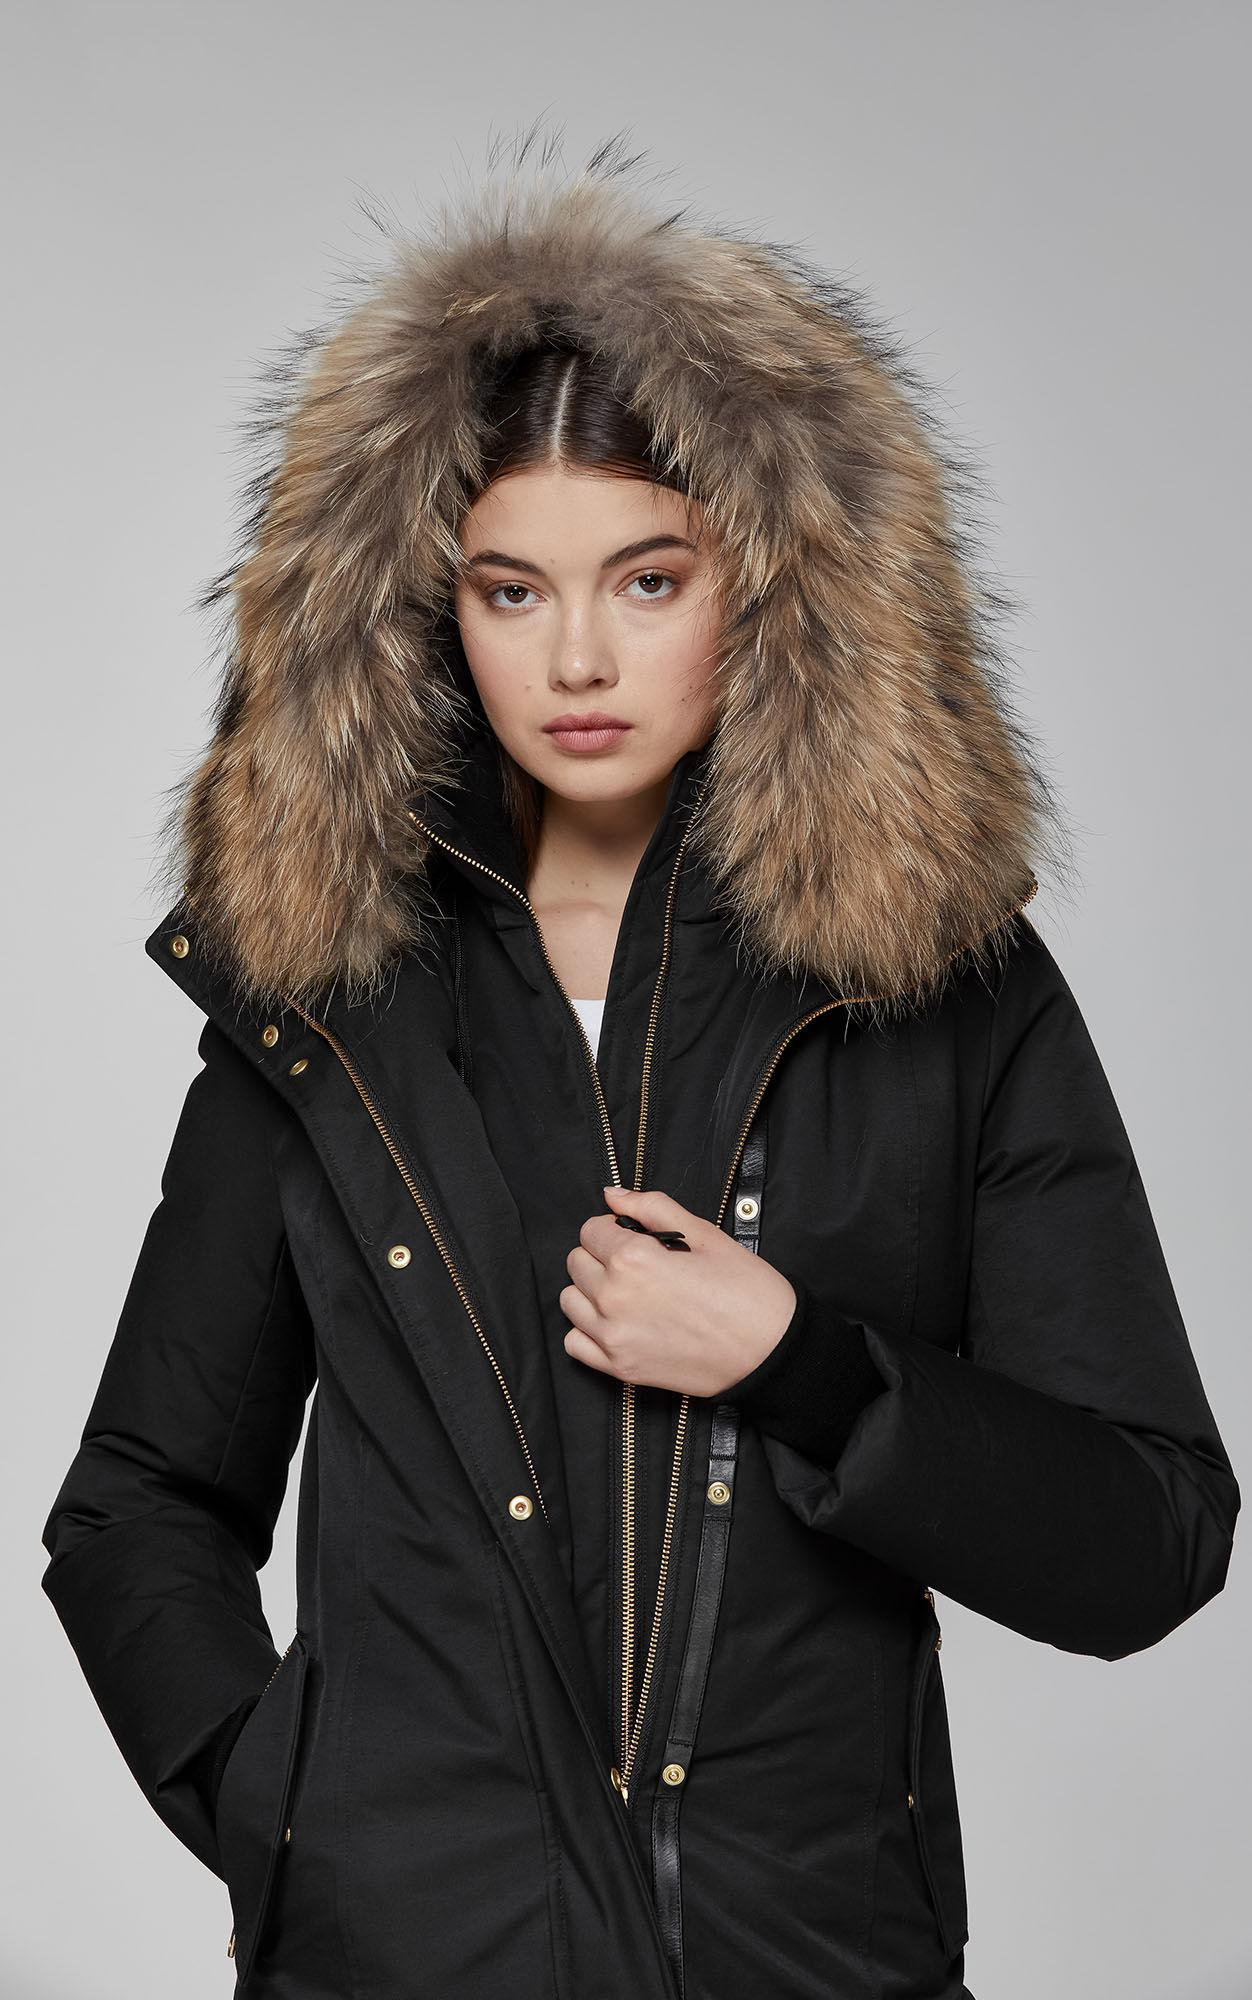 a6d1439f96a21 cheap mackage kerry long army fitted winter down parka for women with fur  hood 4fa3d a5a0f  france mackage black harlowe lux down coat lyst. view  fullscreen ...